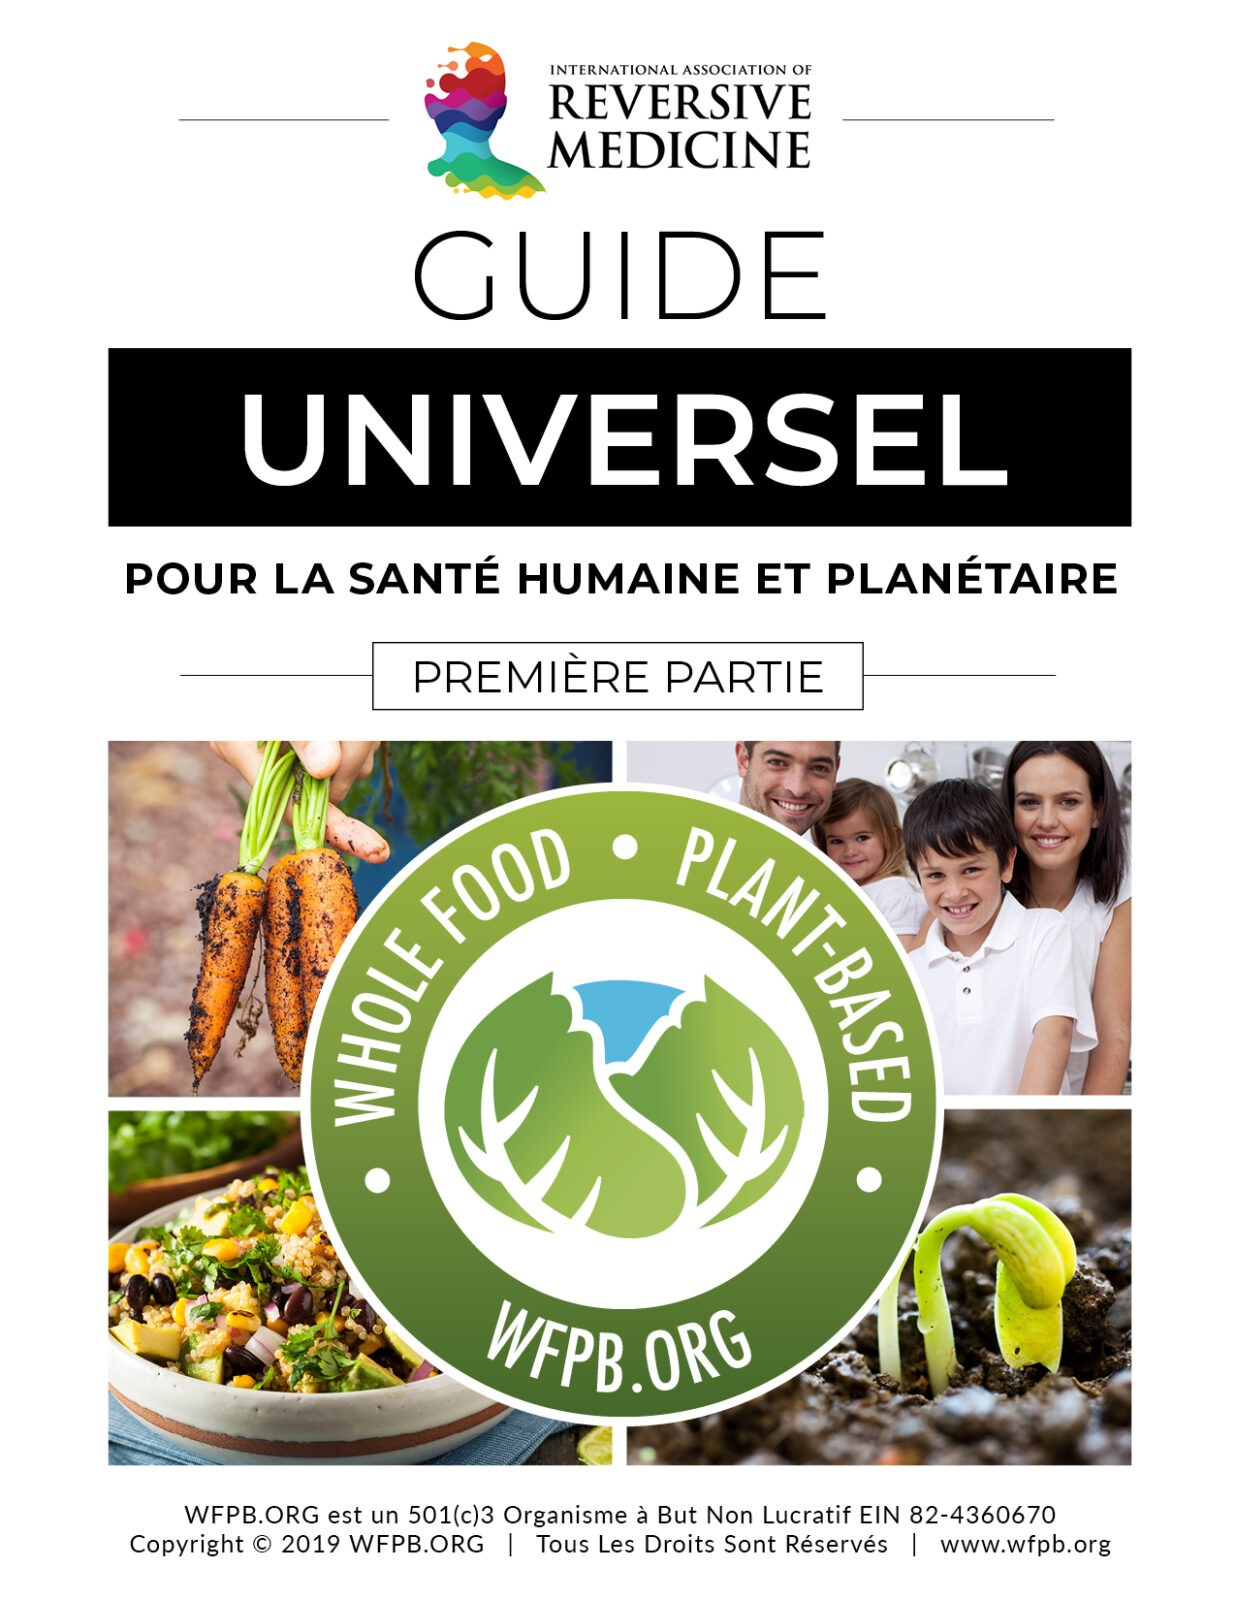 FRANÇAIS | UNIVERSAL GUIDELINE FOR HUMAN AND PLANETARY HEALTH | WFPB.ORG